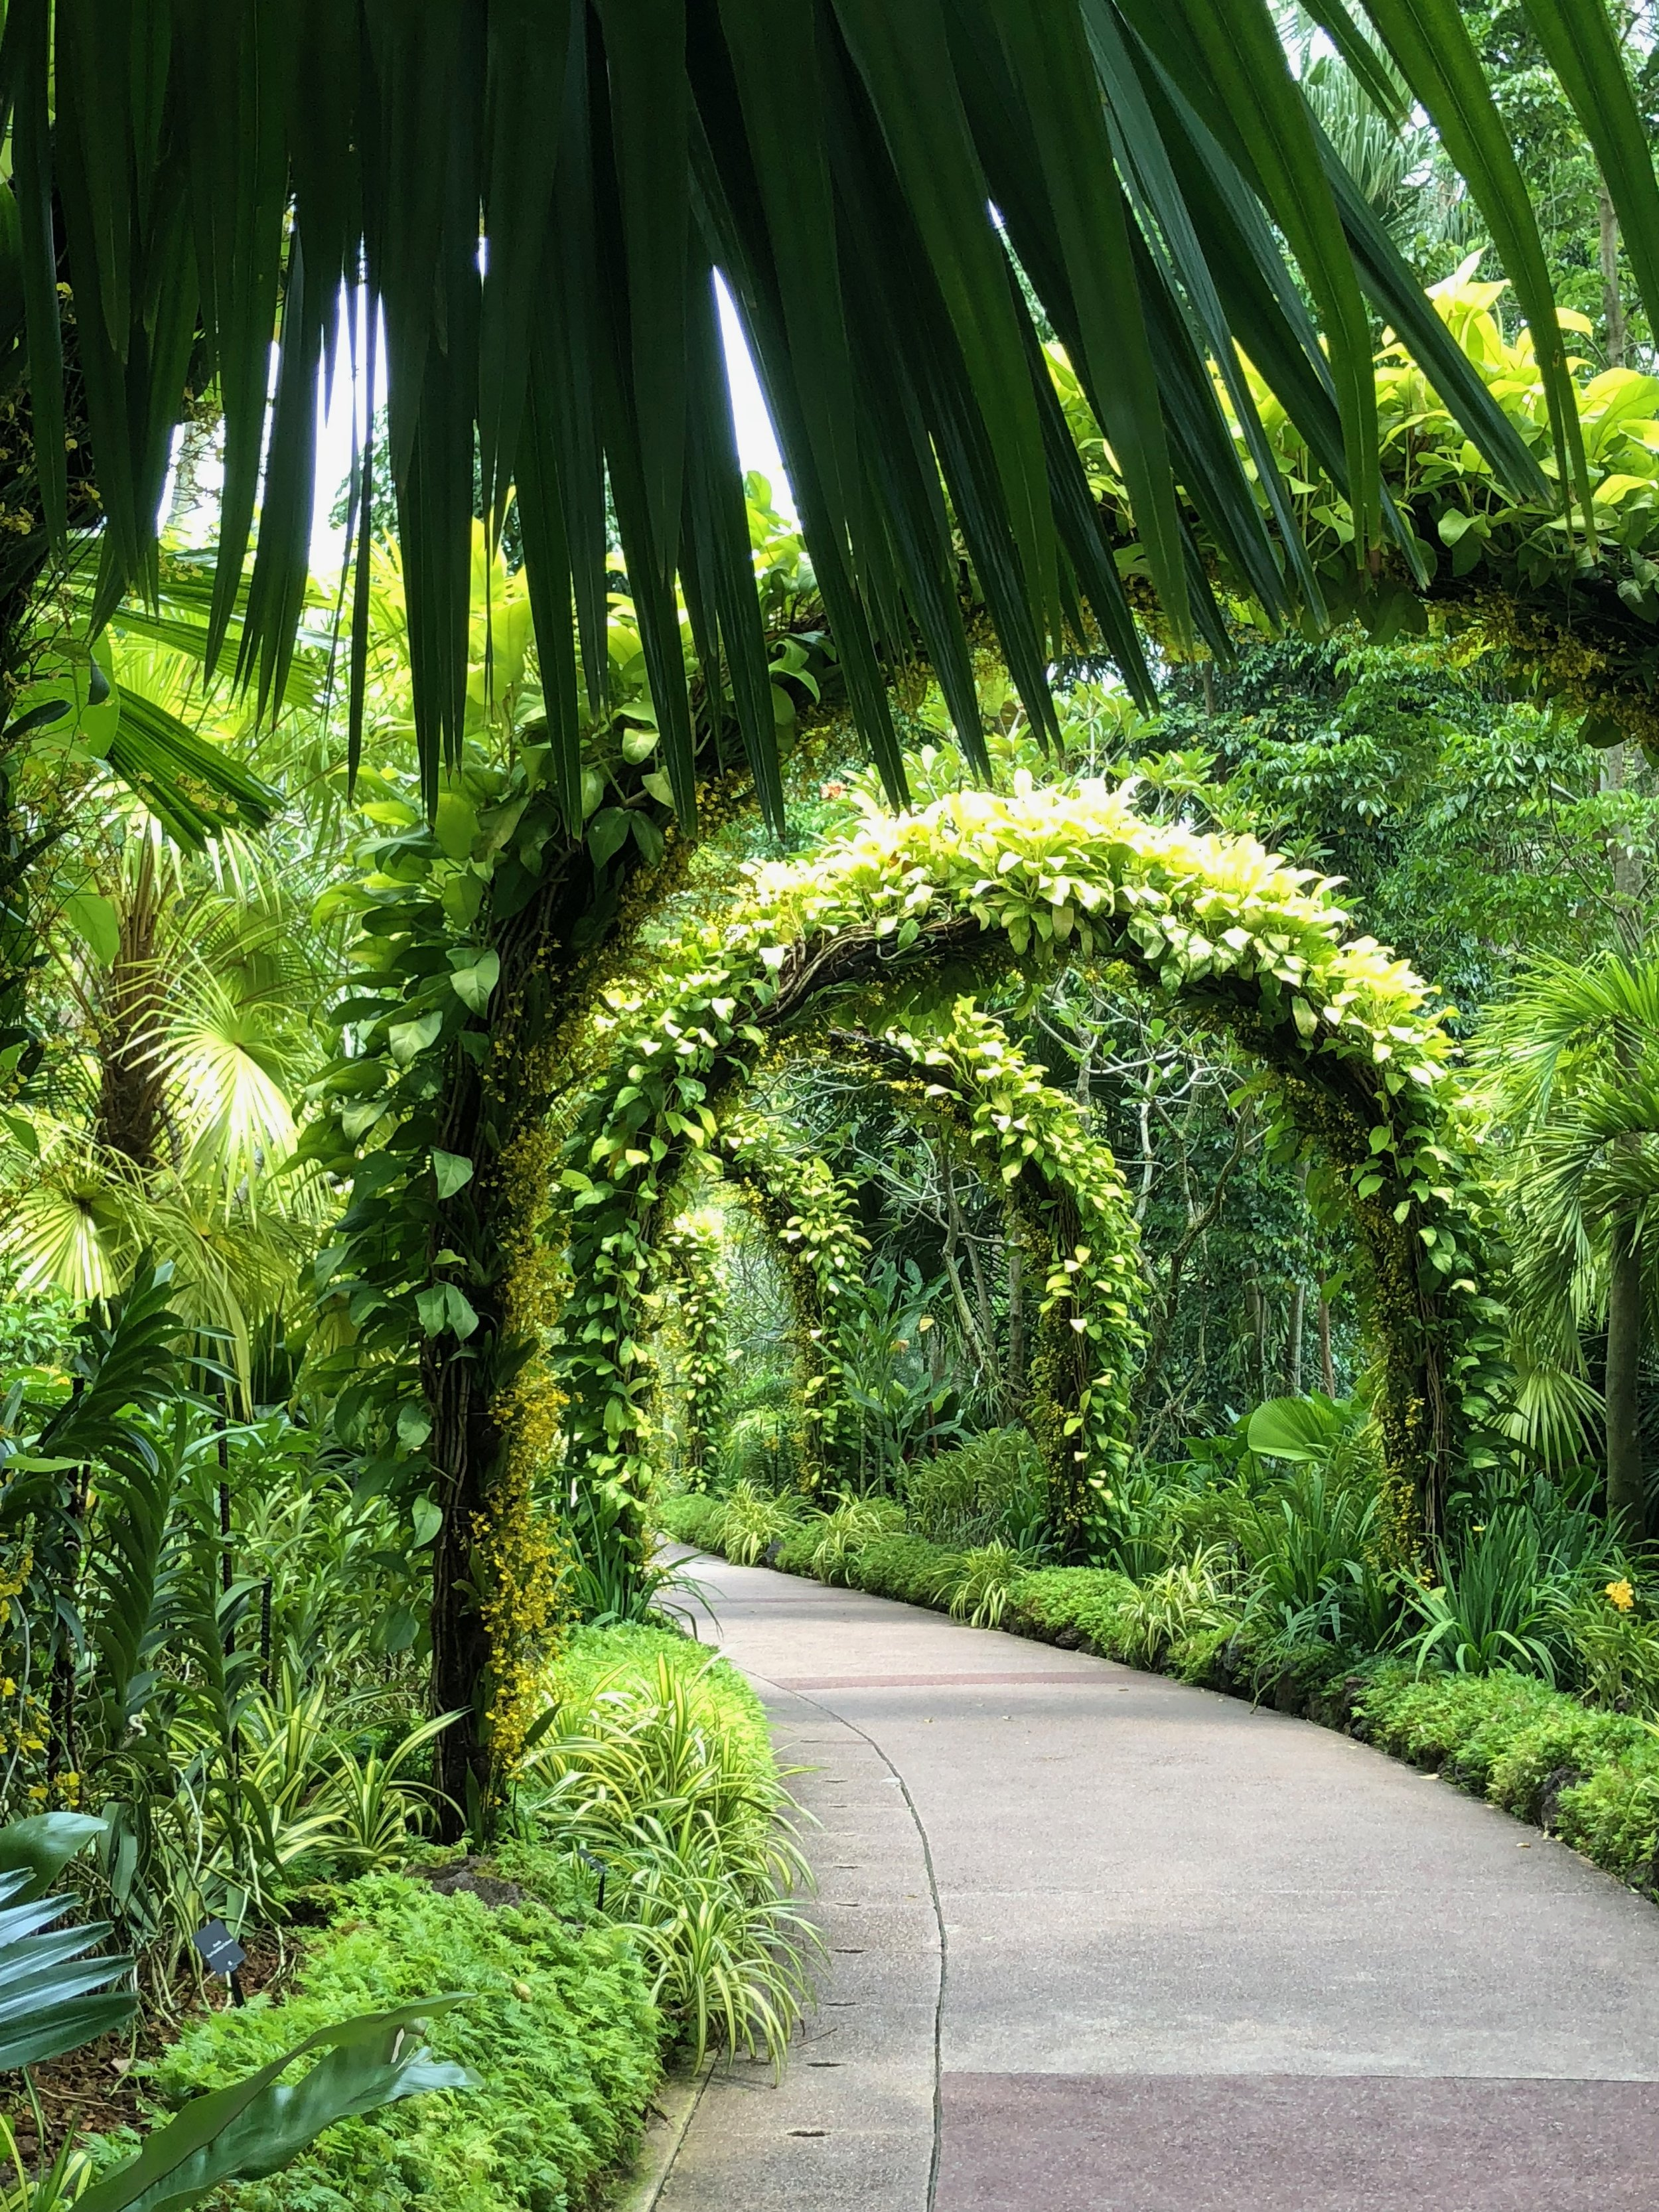 An archway tunnel of leaves, in the private orchid garden, I believe.